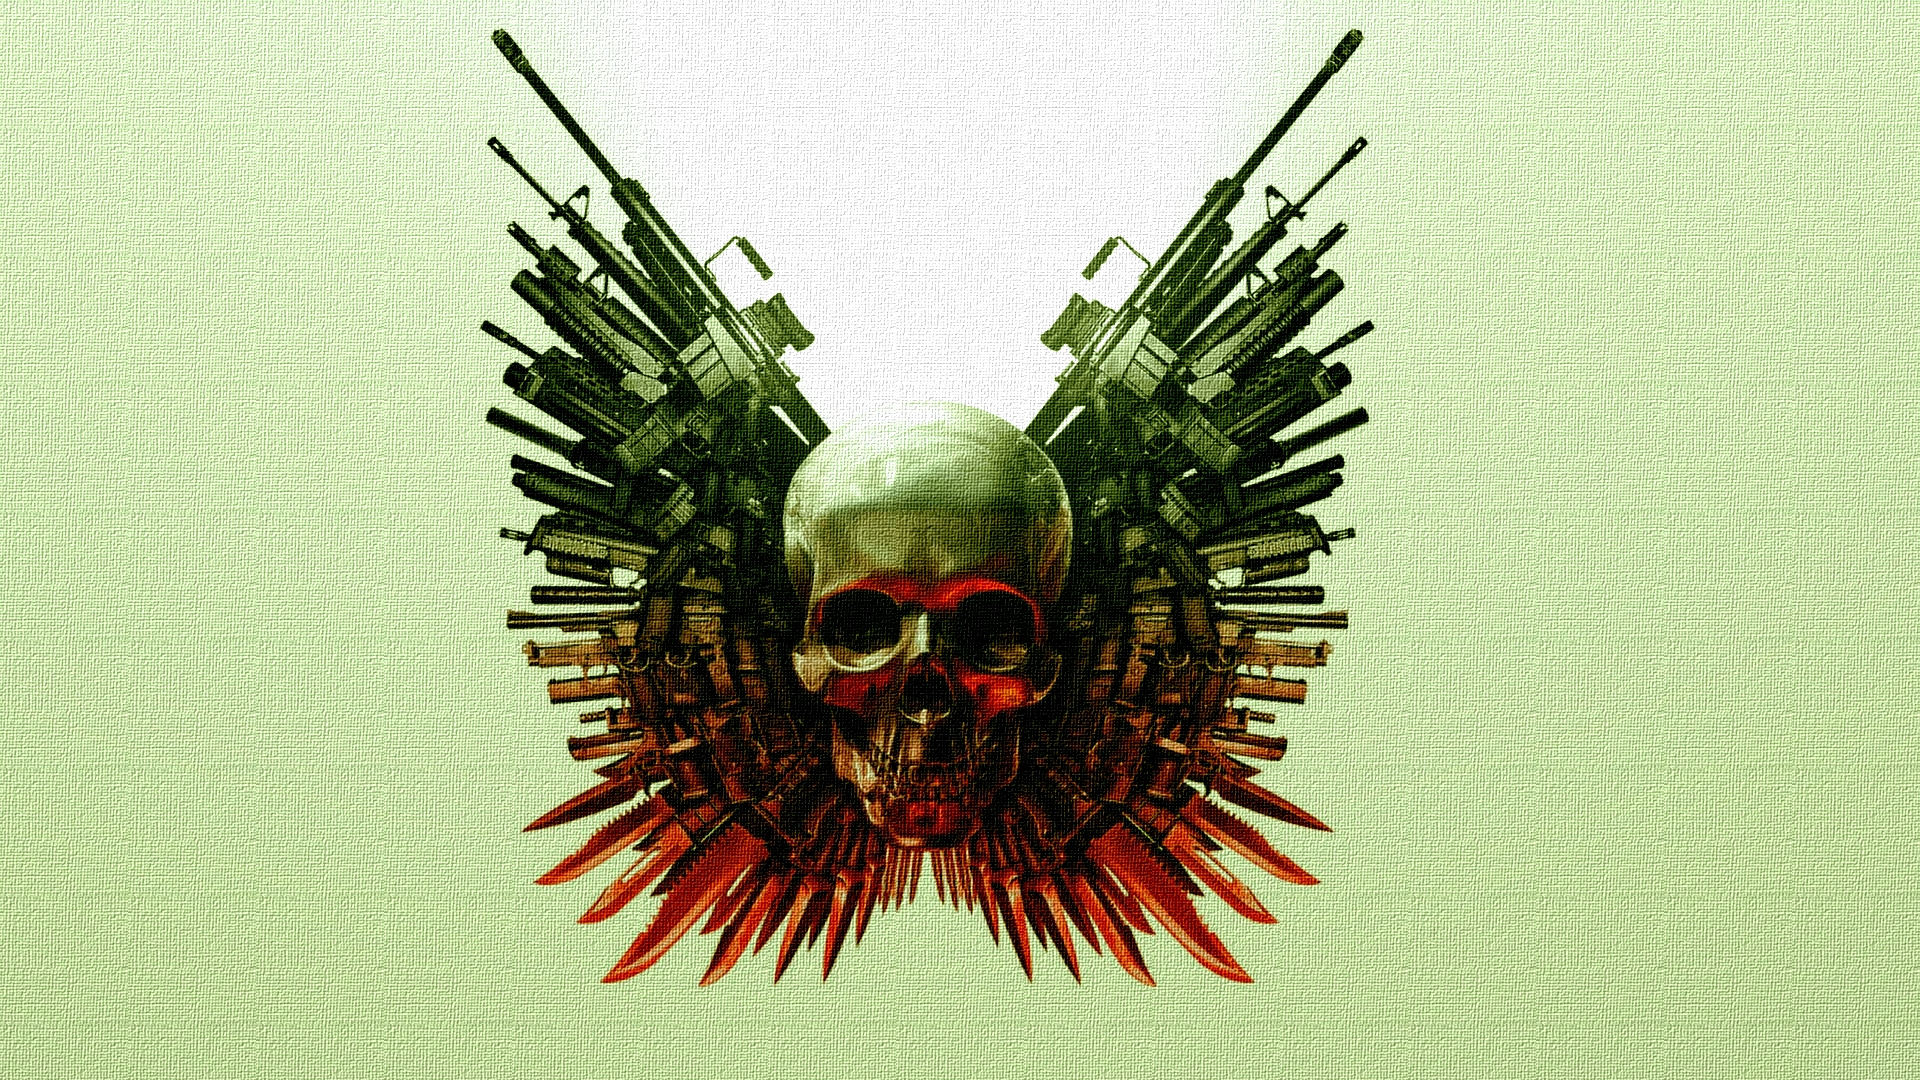 The Expendables Weapons Hd Ipad Air Wallpaper Download: The Expendables Wallpapers, Pictures, Images